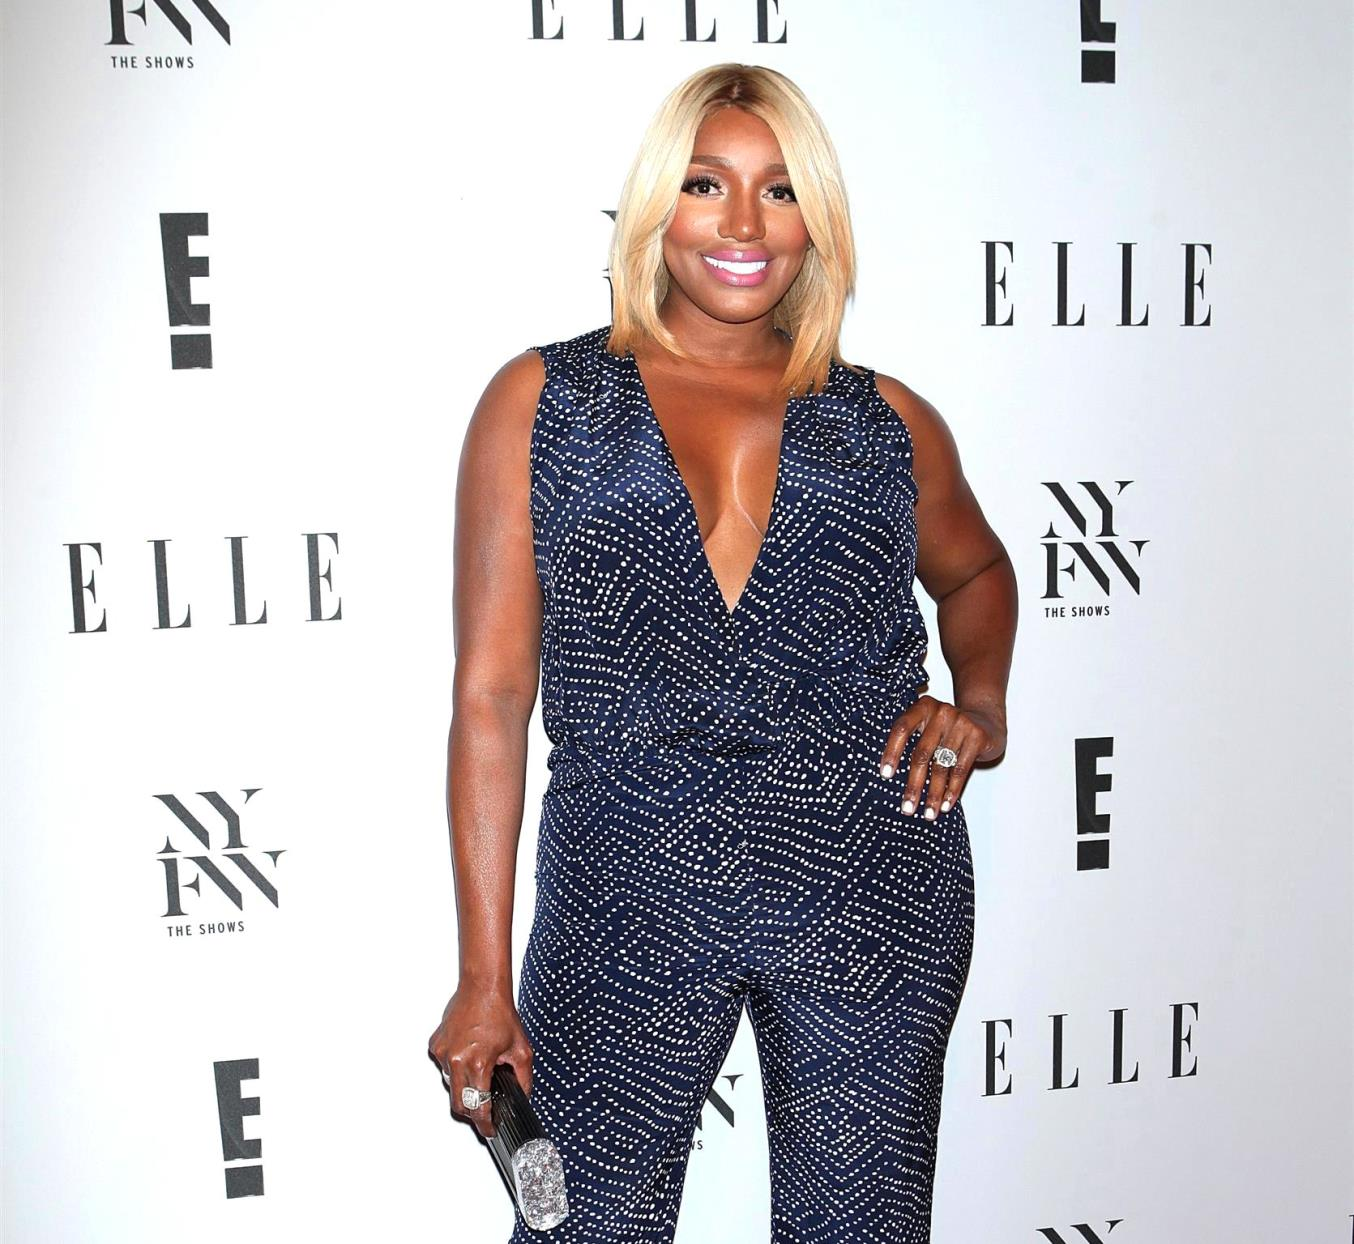 https://people.com/tv/nene-leakes-denies-shes-not-returning-to-rhoa/